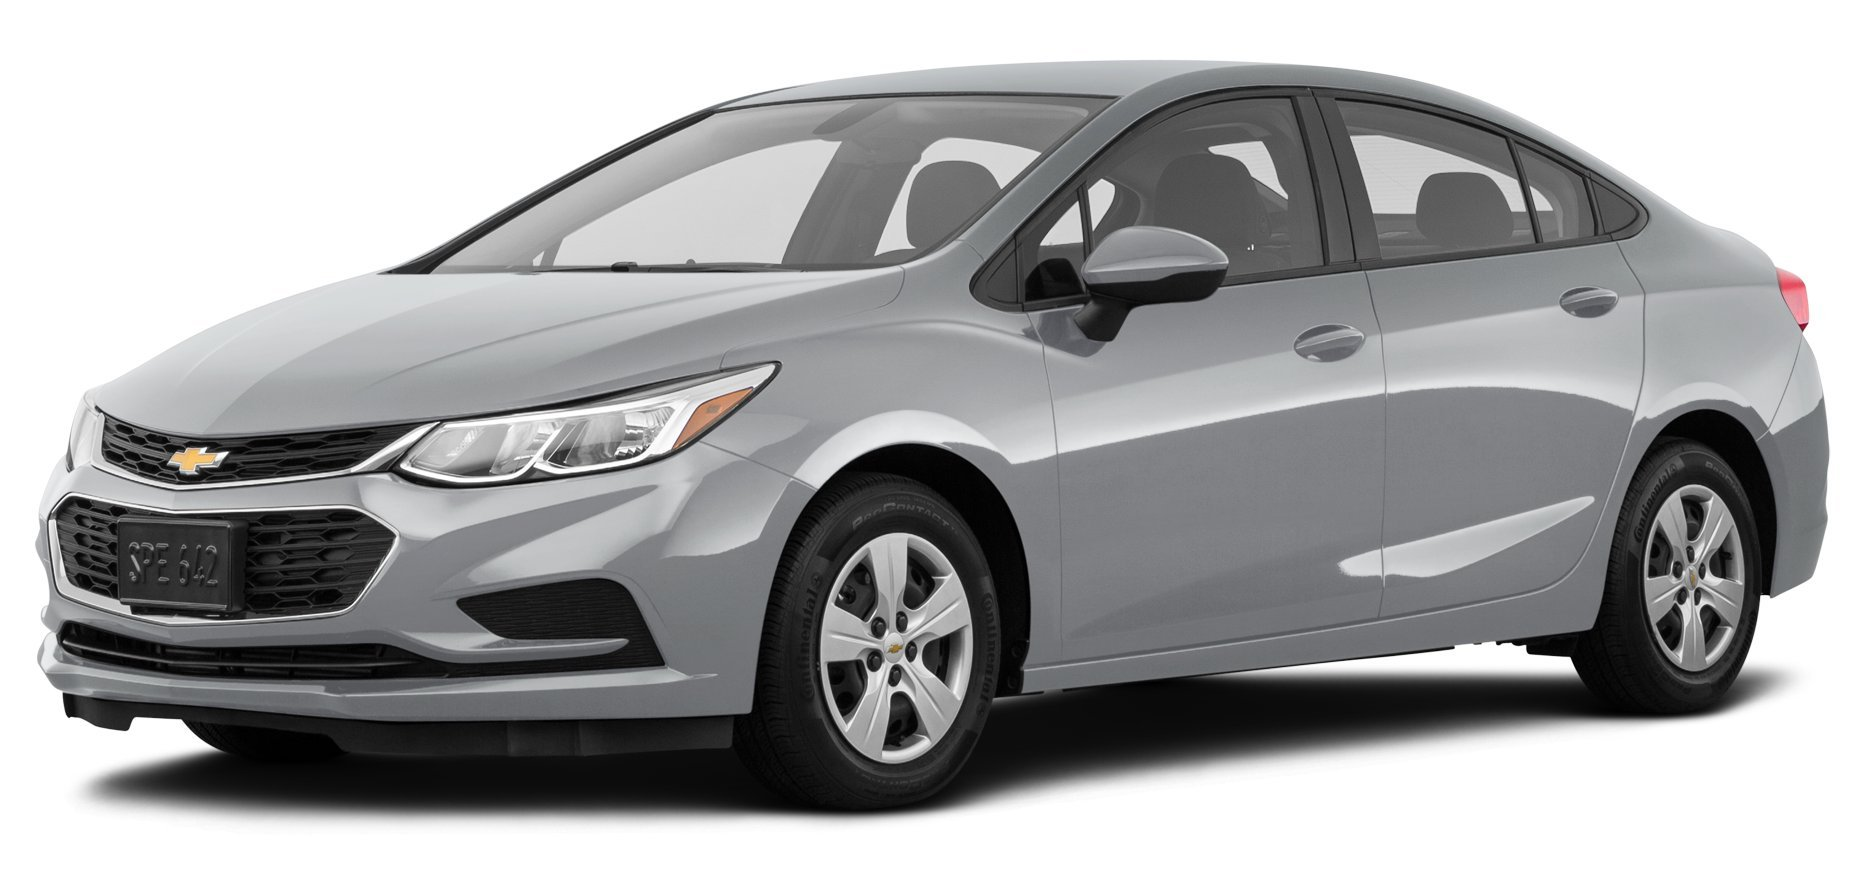 2017 chevrolet cruze reviews images and specs vehicles. Black Bedroom Furniture Sets. Home Design Ideas